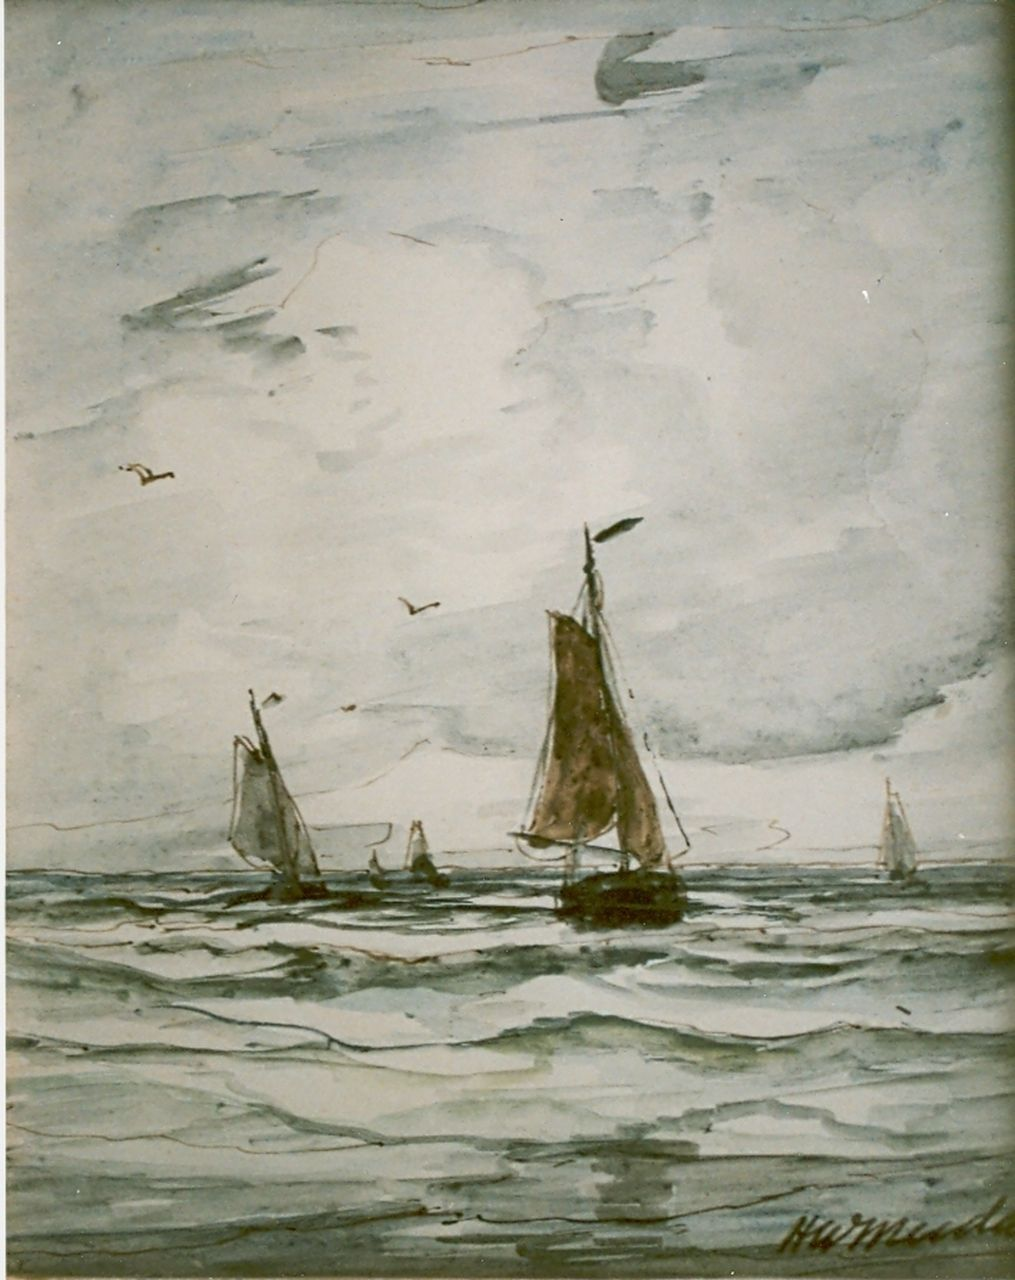 Mesdag H.W.  | Hendrik Willem Mesdag, Sailing vessels in full sail, watercolour on paper 17.8 x 14.6 cm, signed l.r.